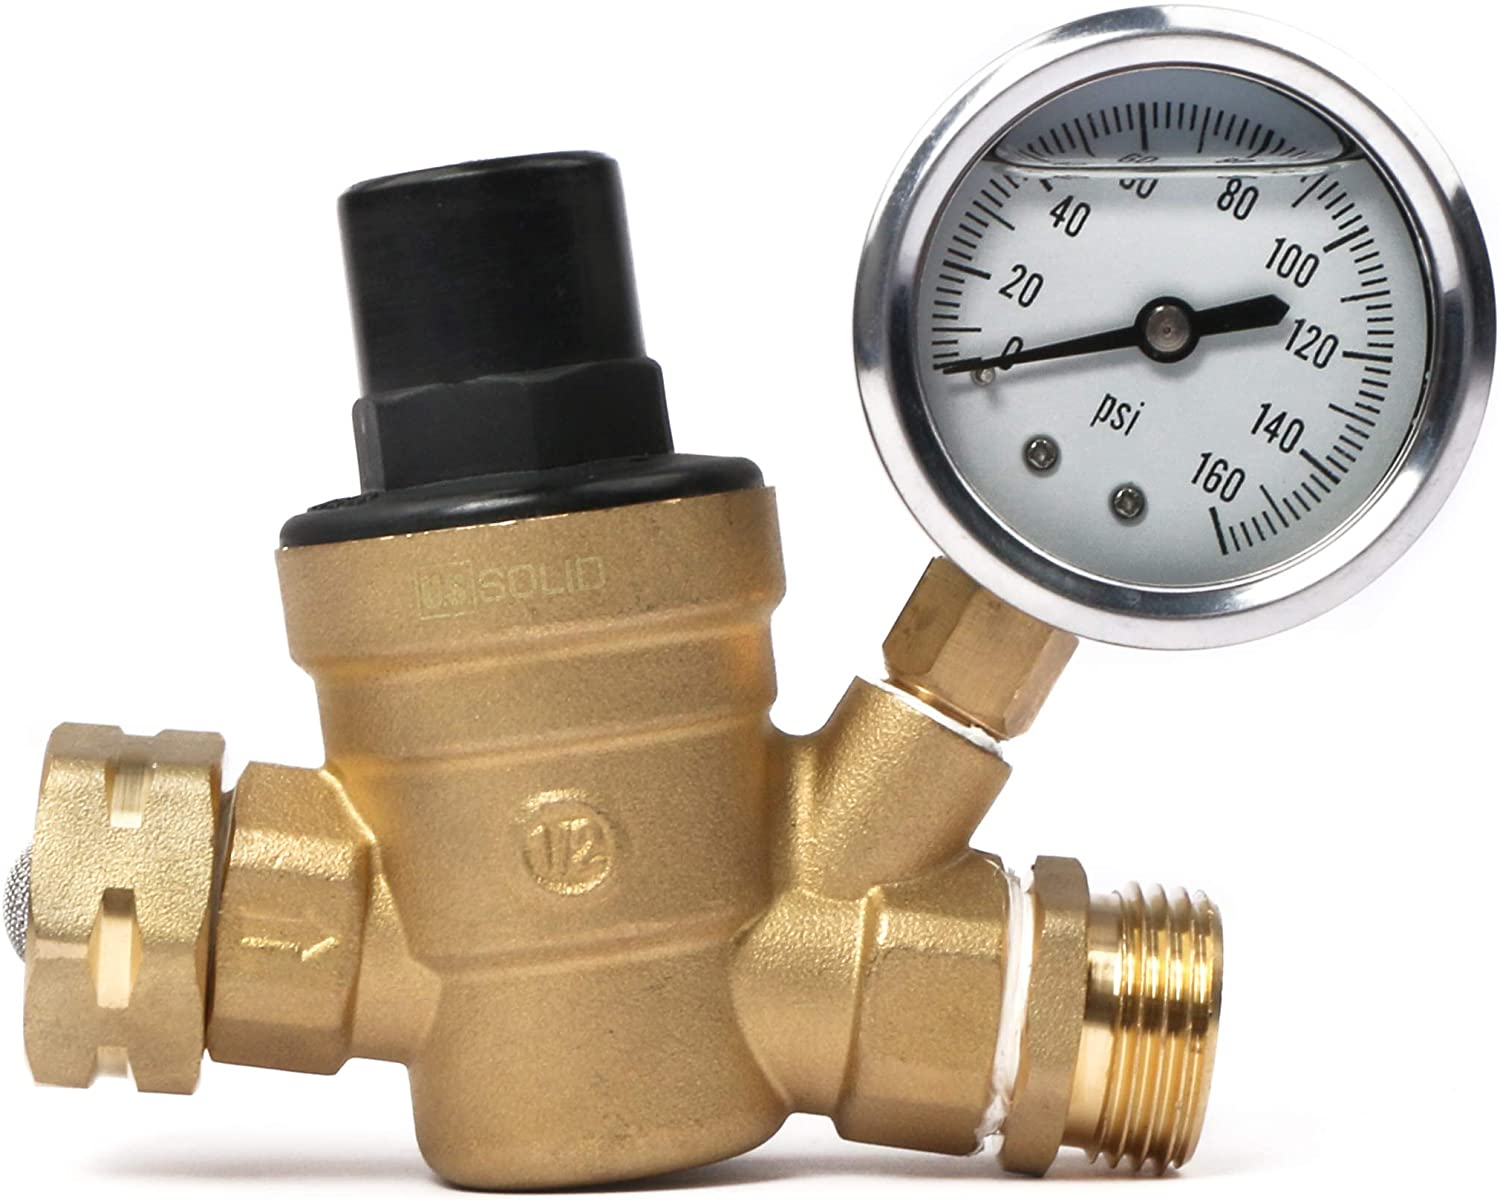 NH Thread Lead Free Brass Adjustable RV Pressure Regulator with Pressure Gauge and Water Filter Net by U.S. Solid